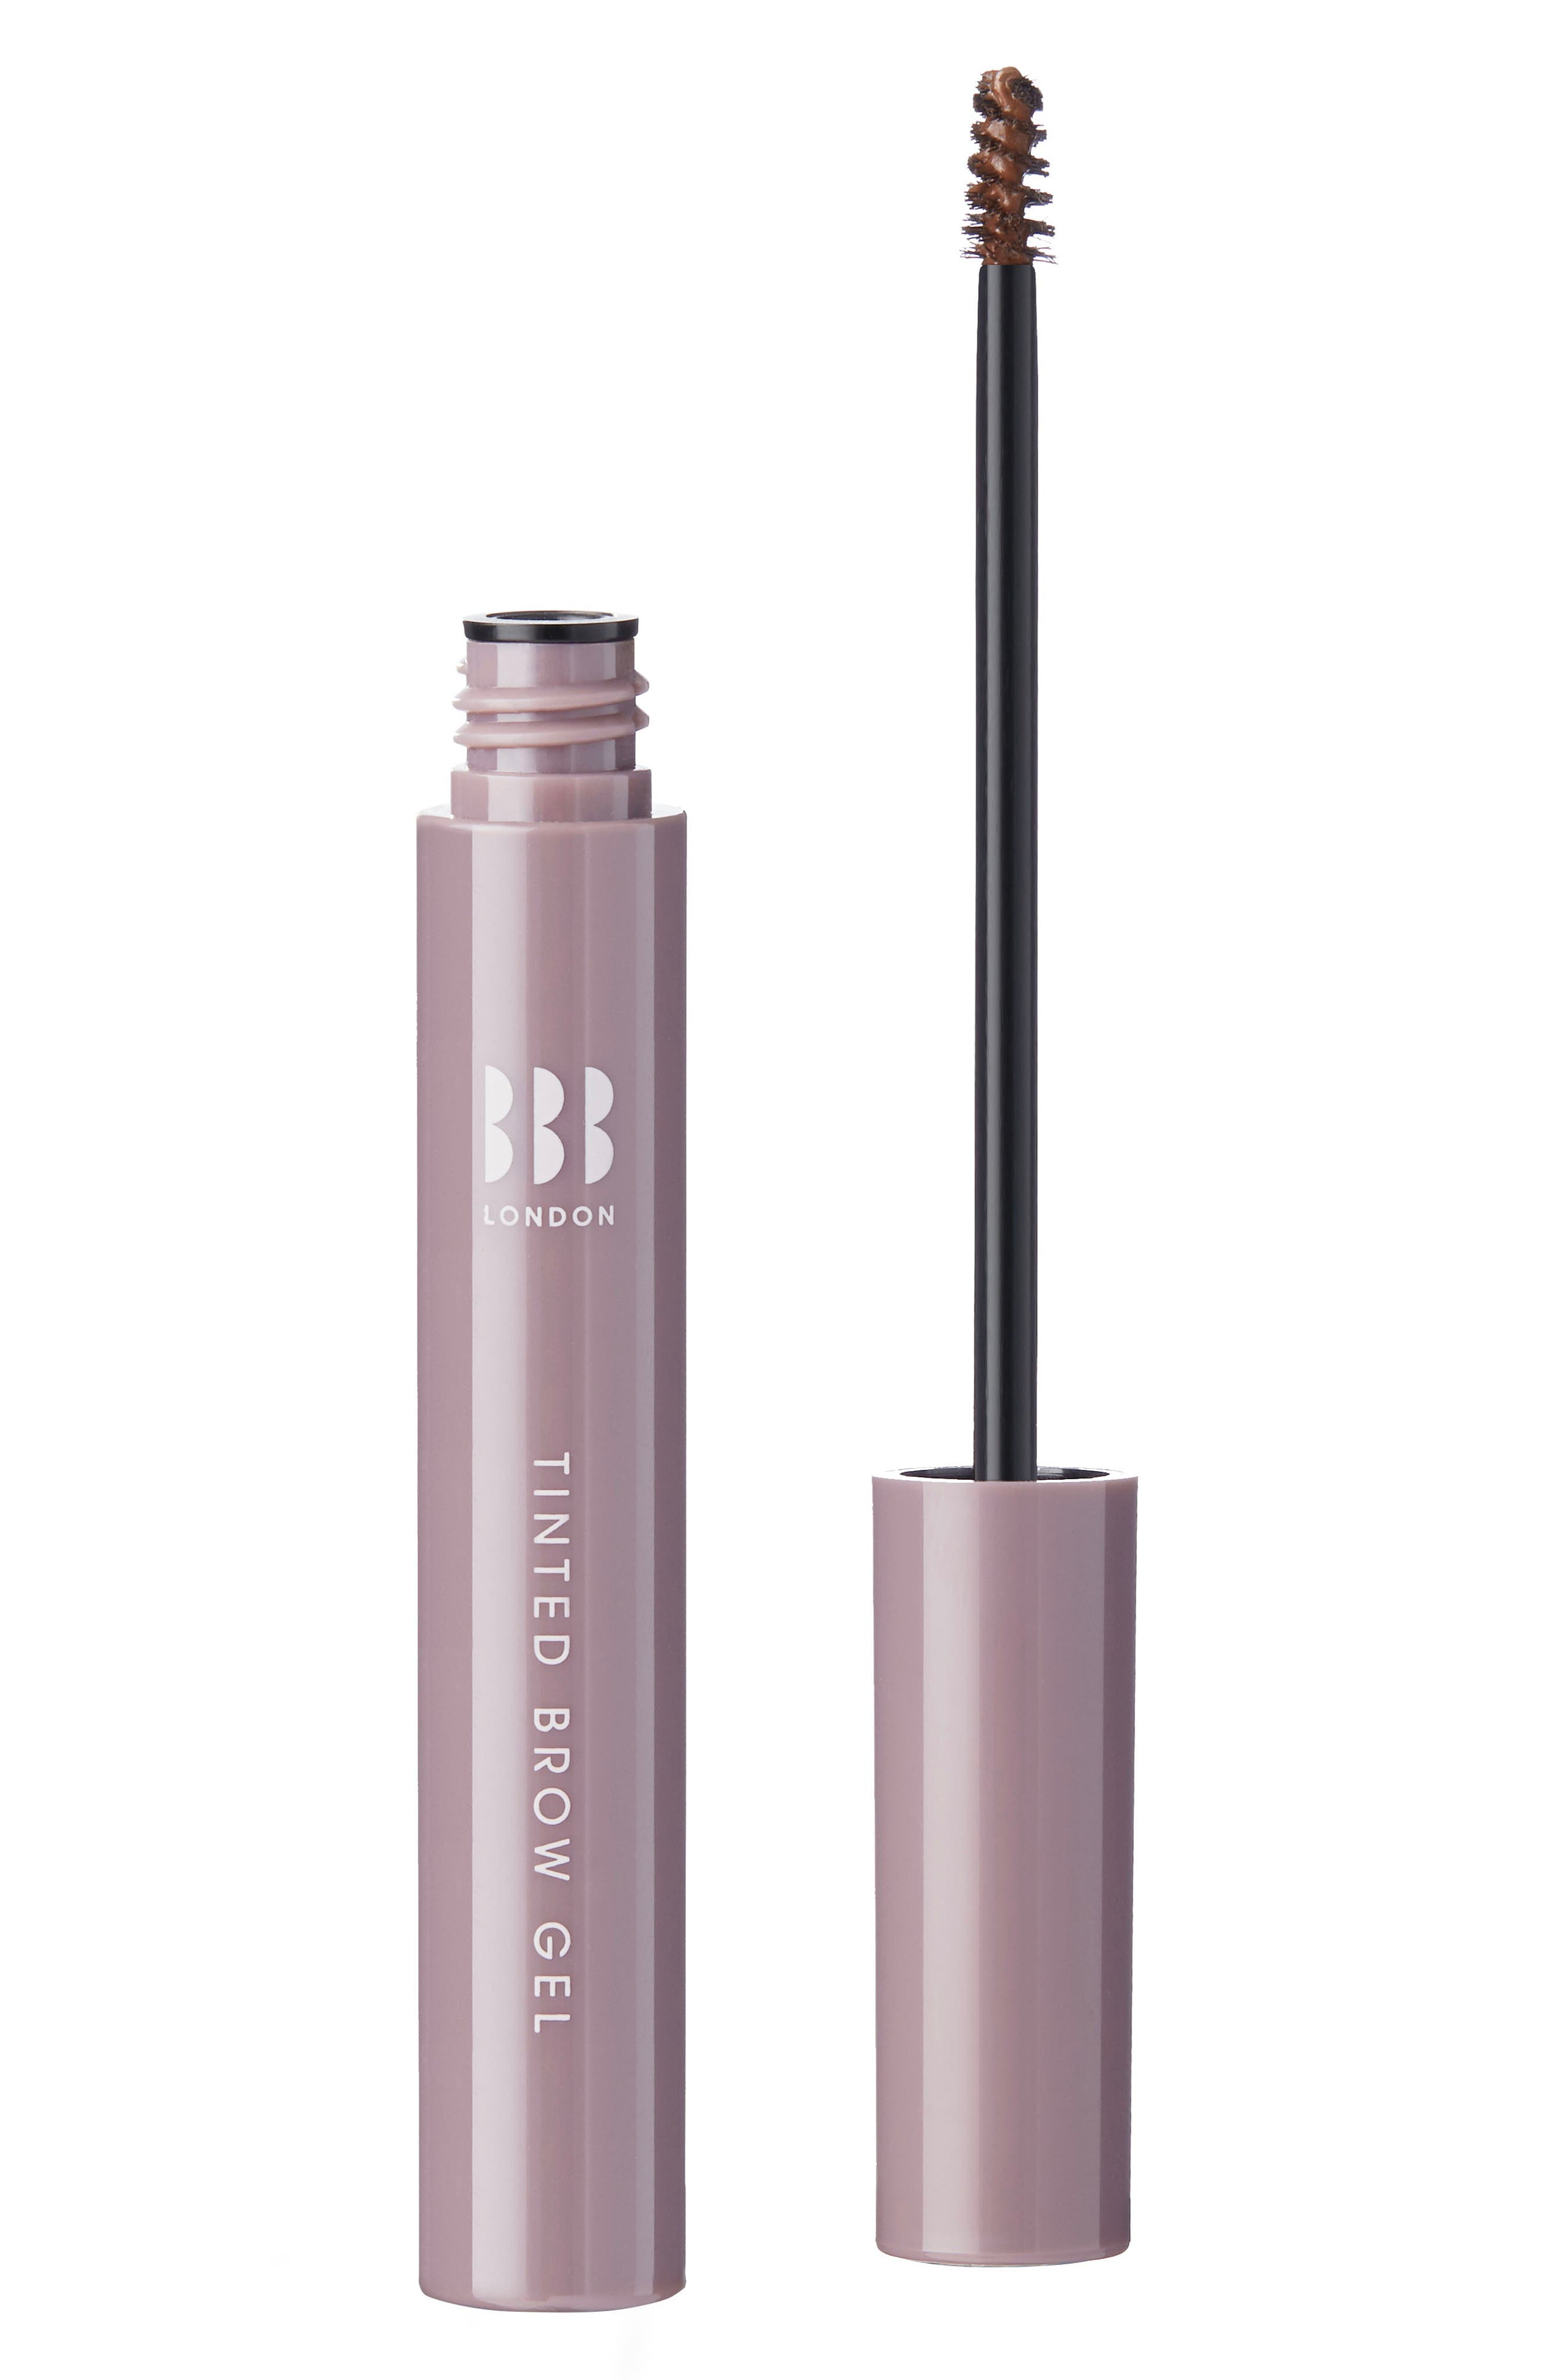 Tinted Brow Gel in Clove at Nordstrom